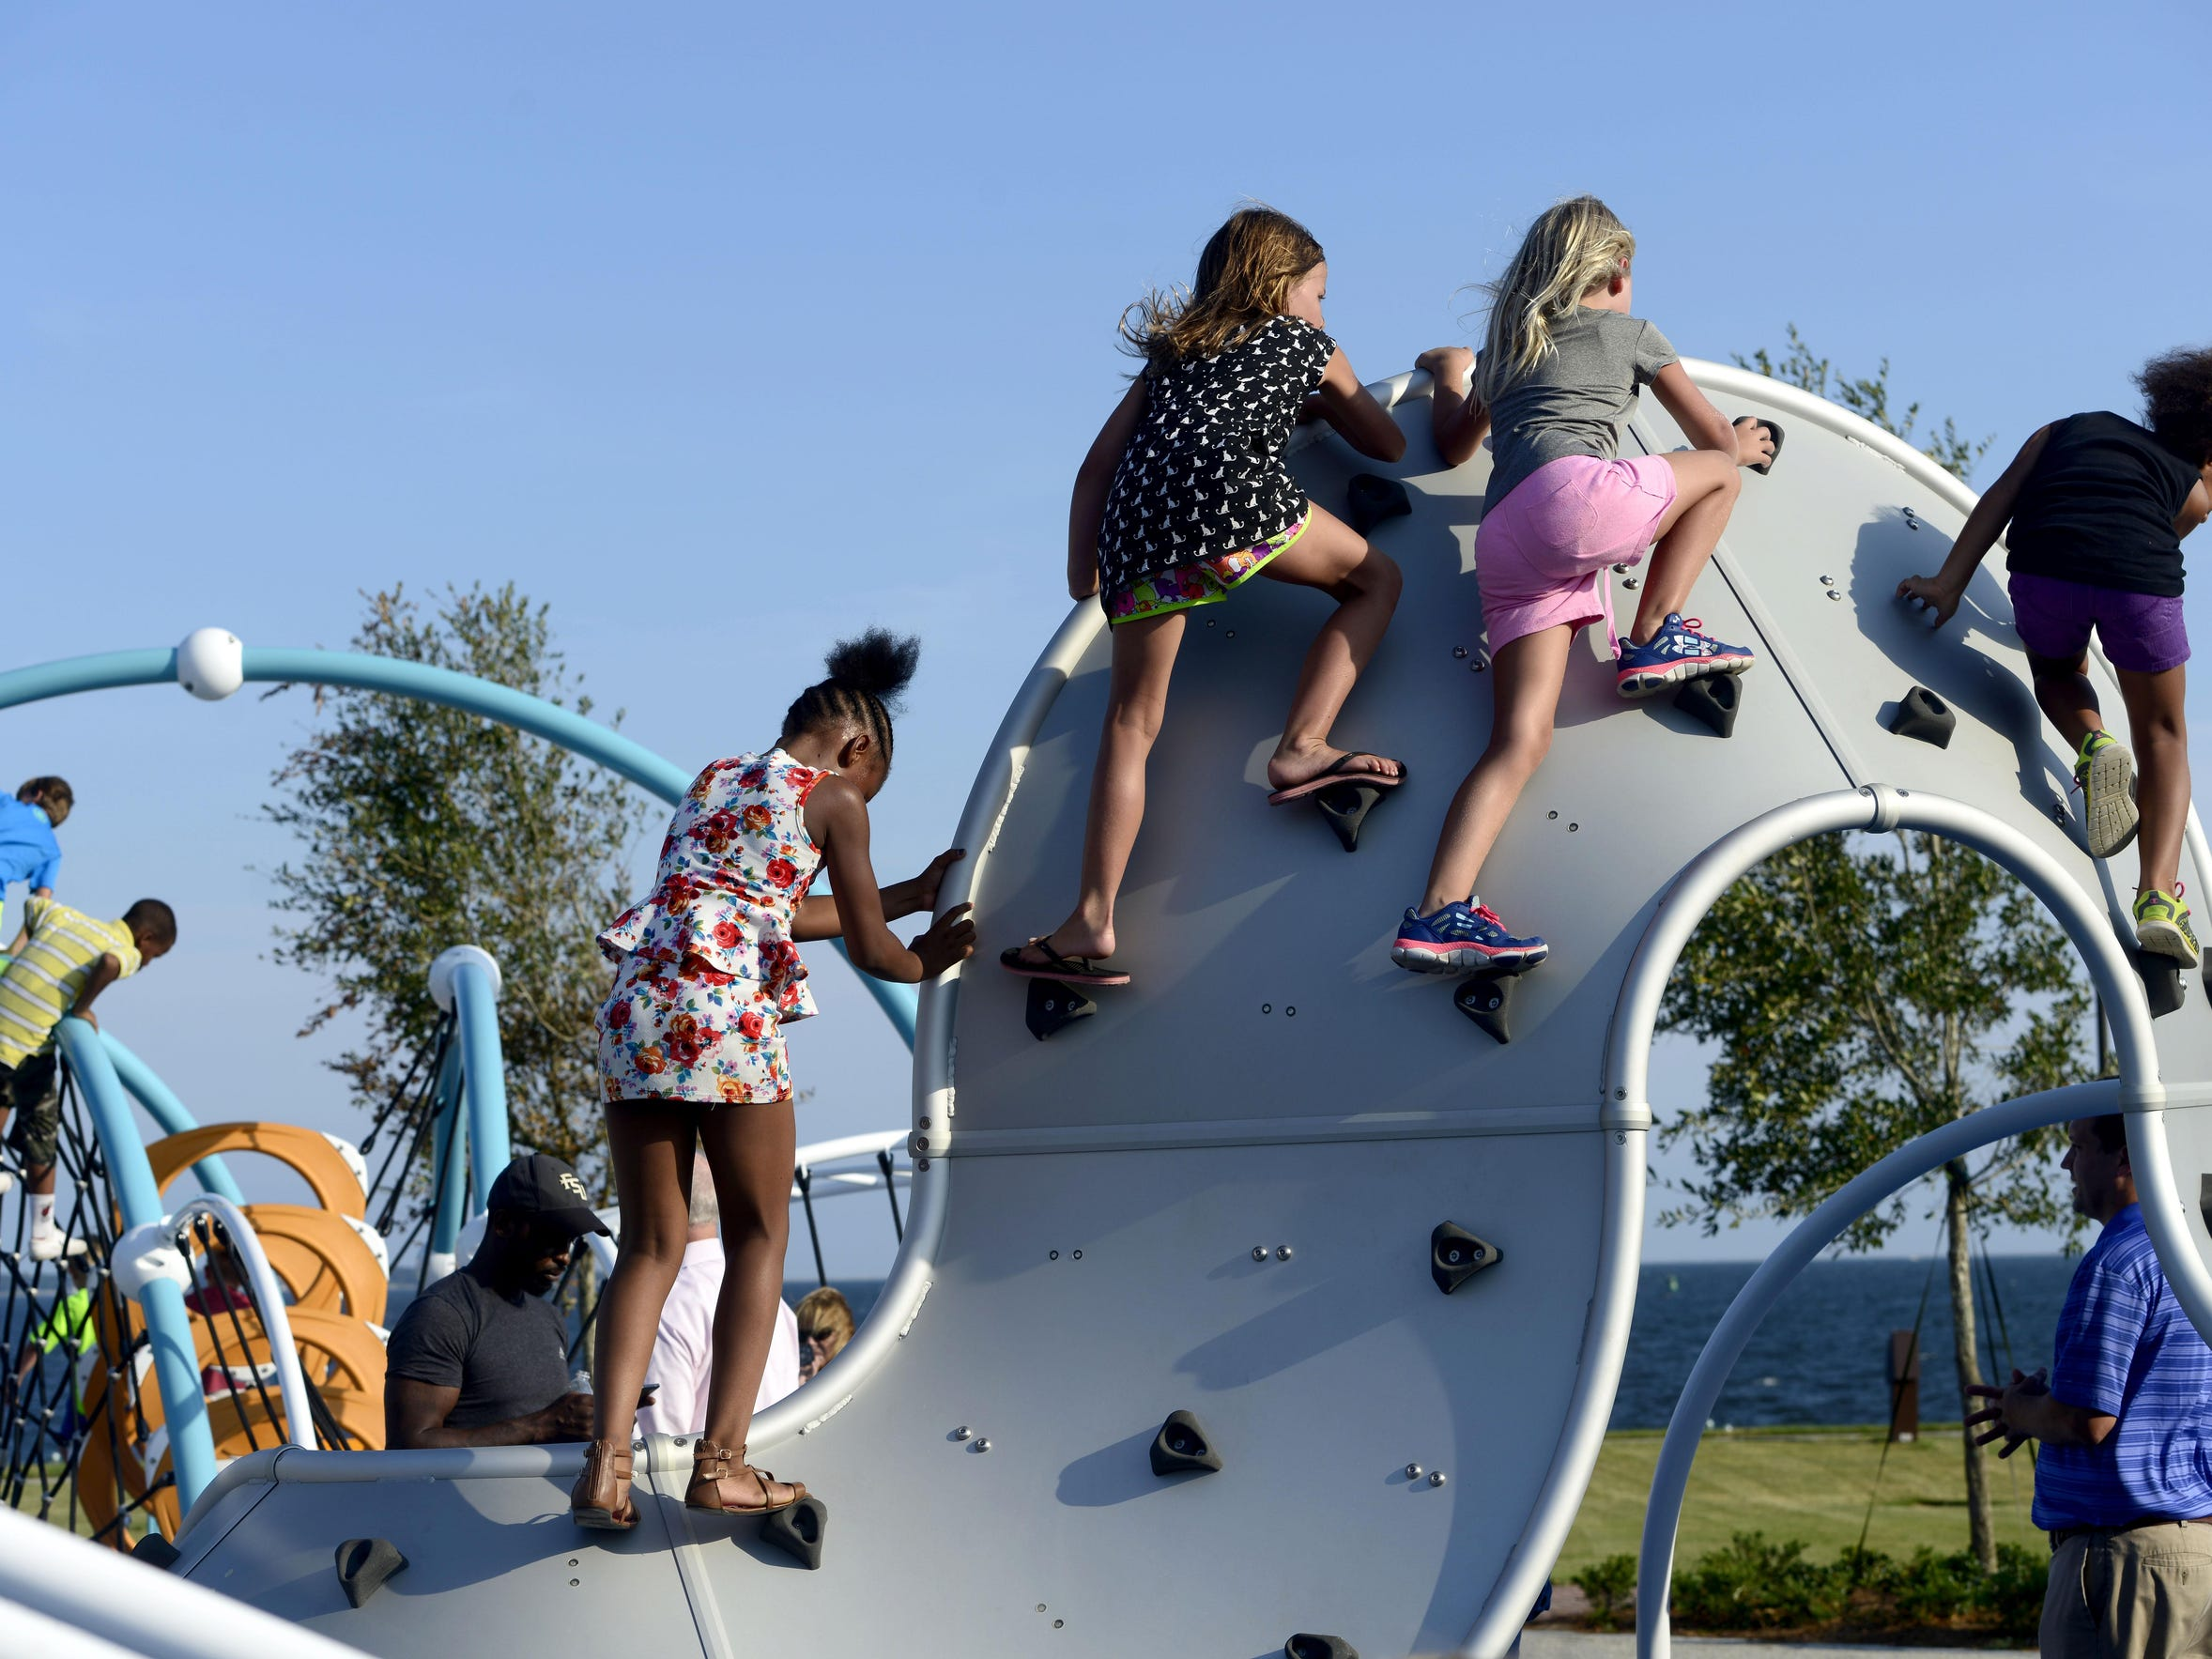 Rotary Centennial Playground opens and Community Maritime Park